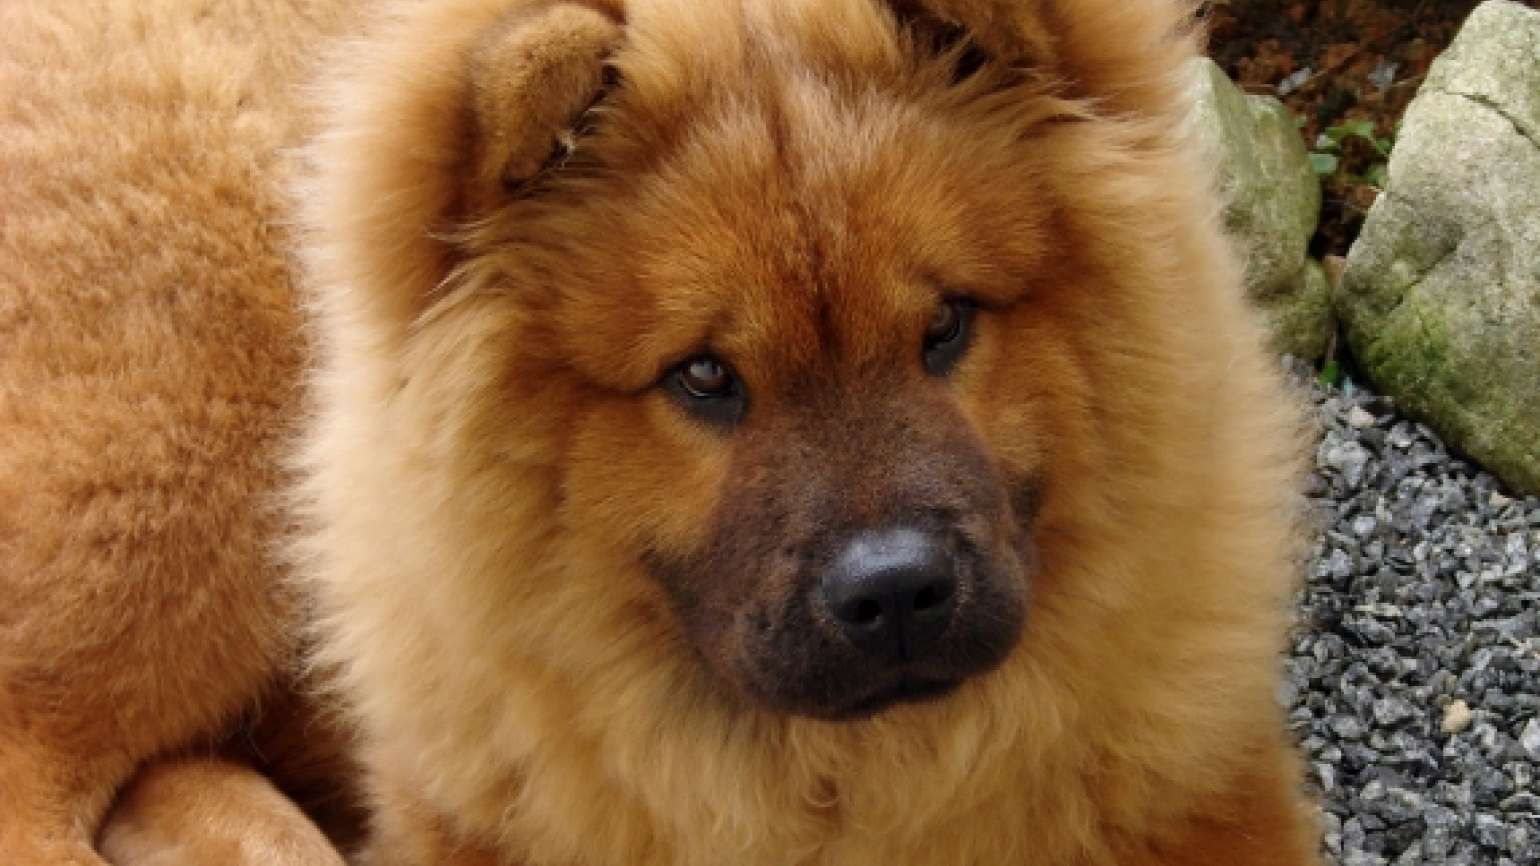 Adorable chow-chow puppy